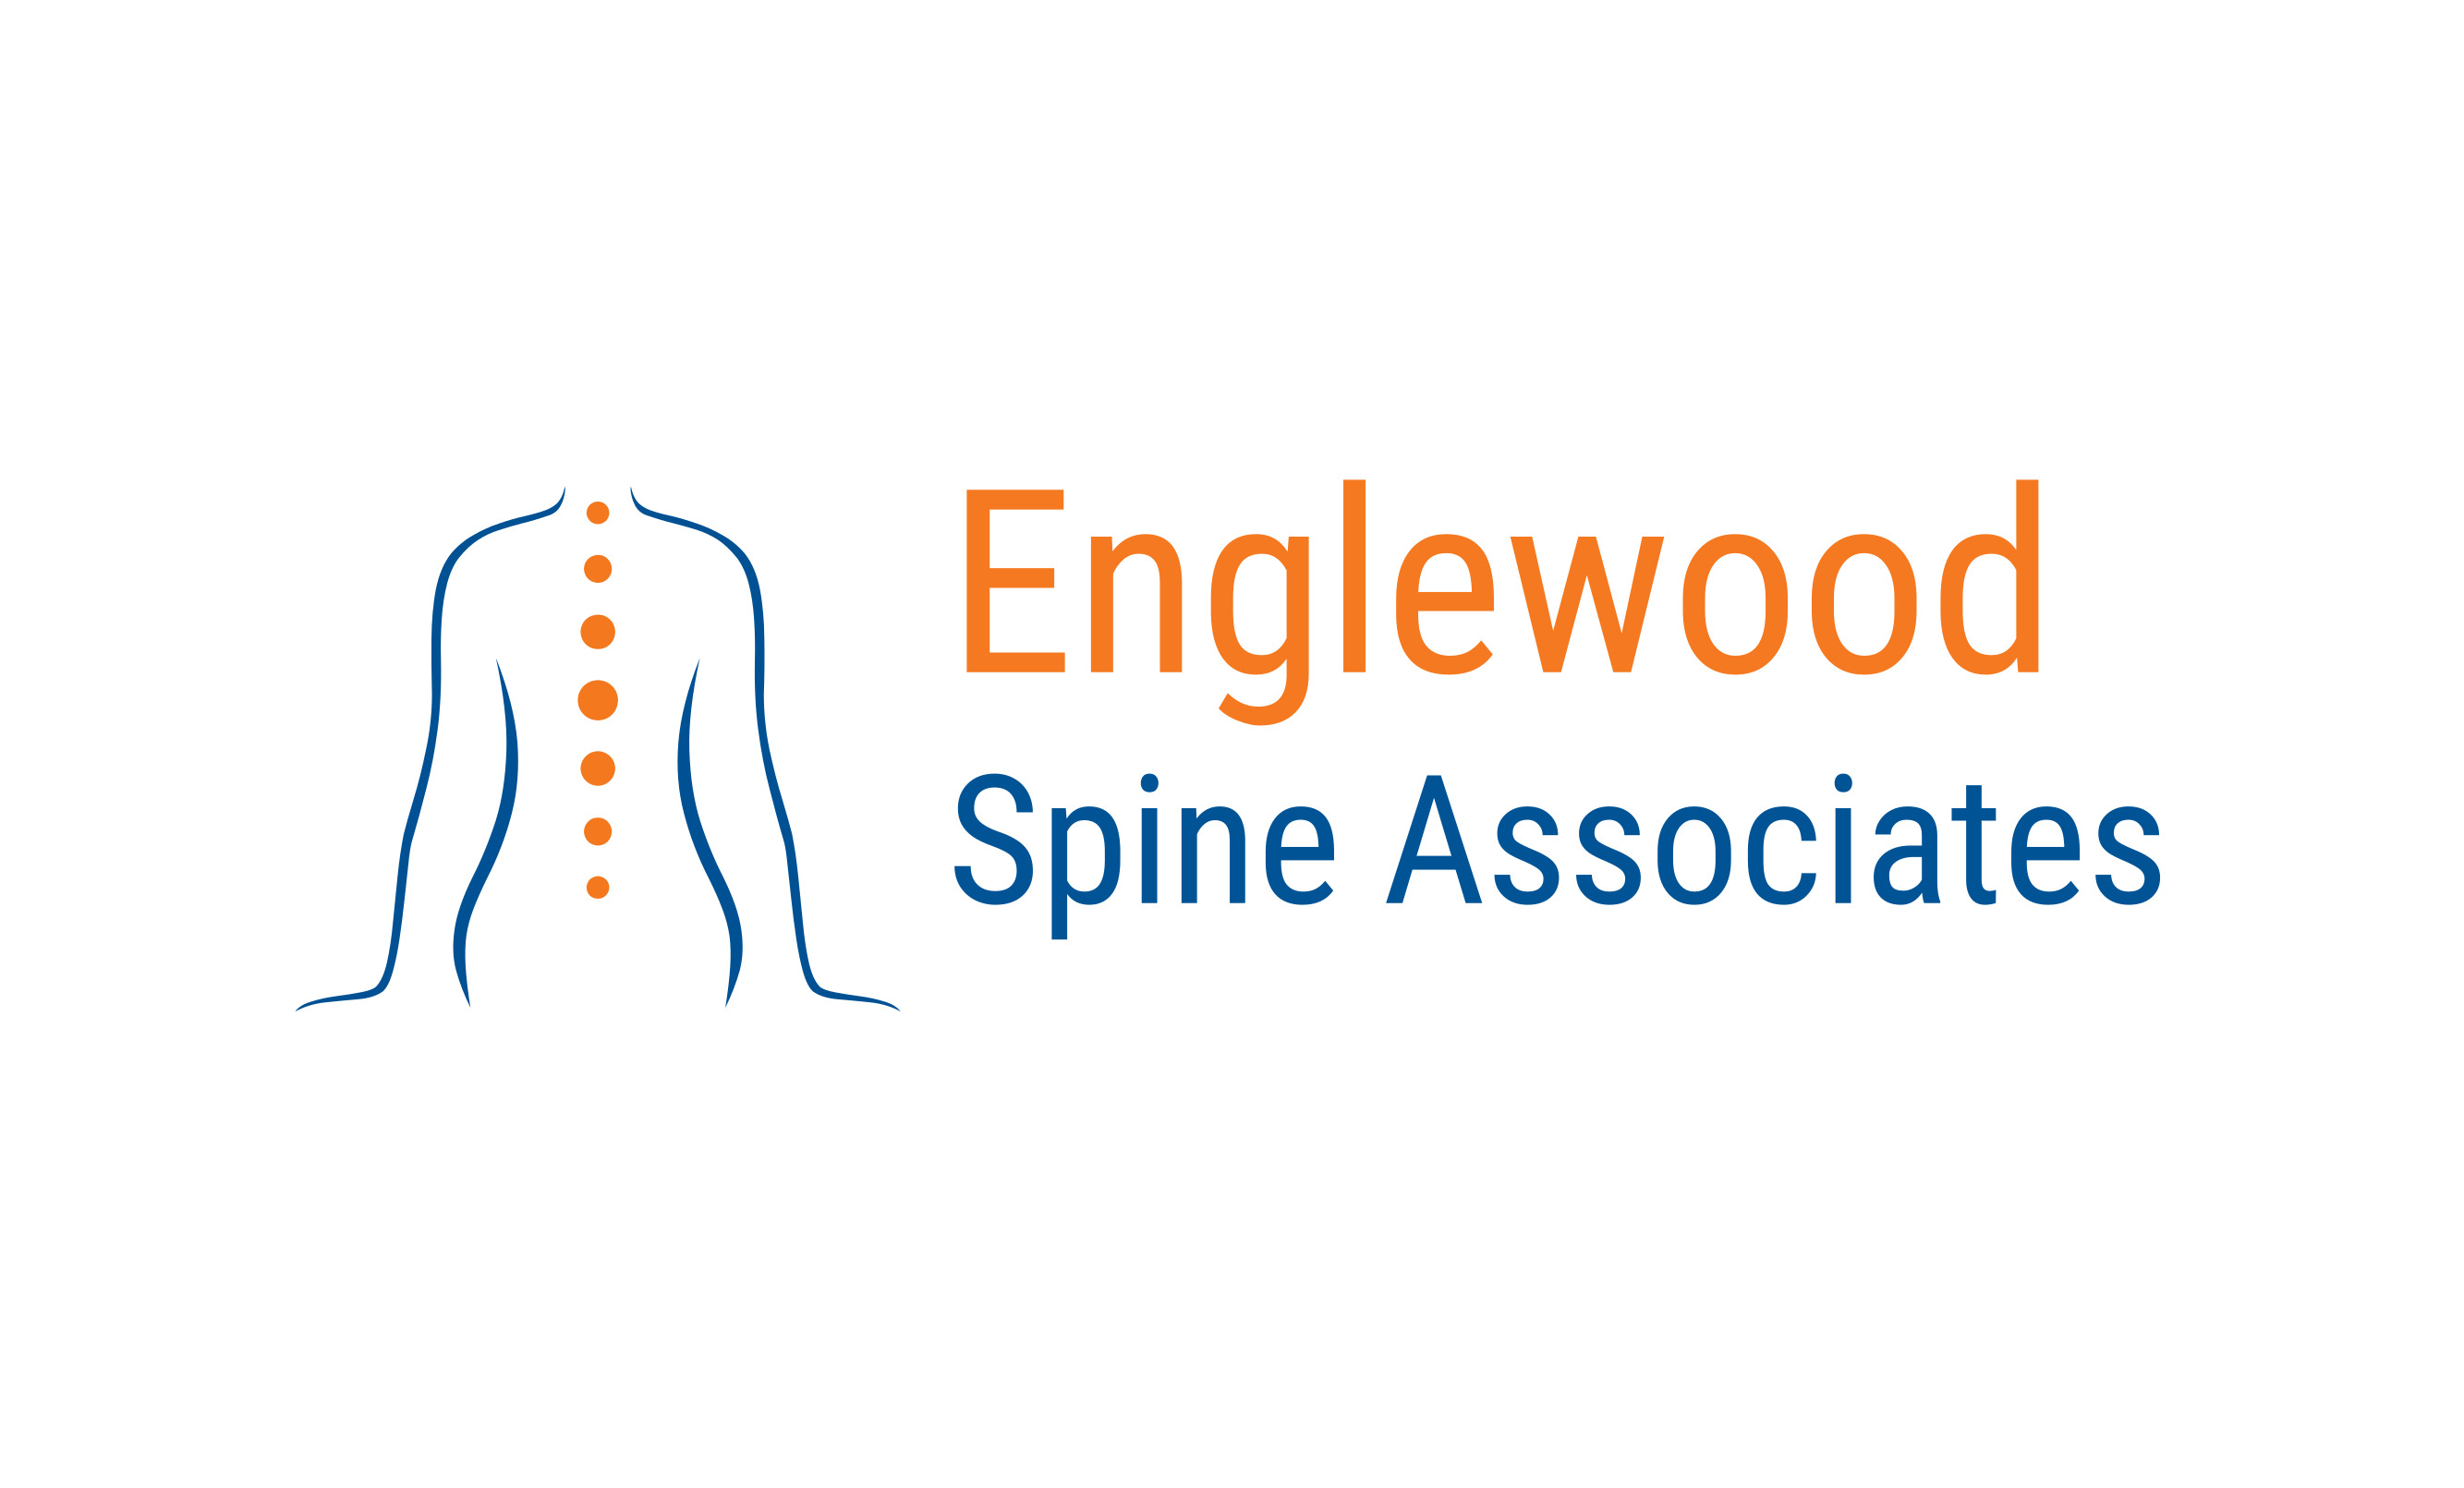 Englewood Spine Associates, LLC